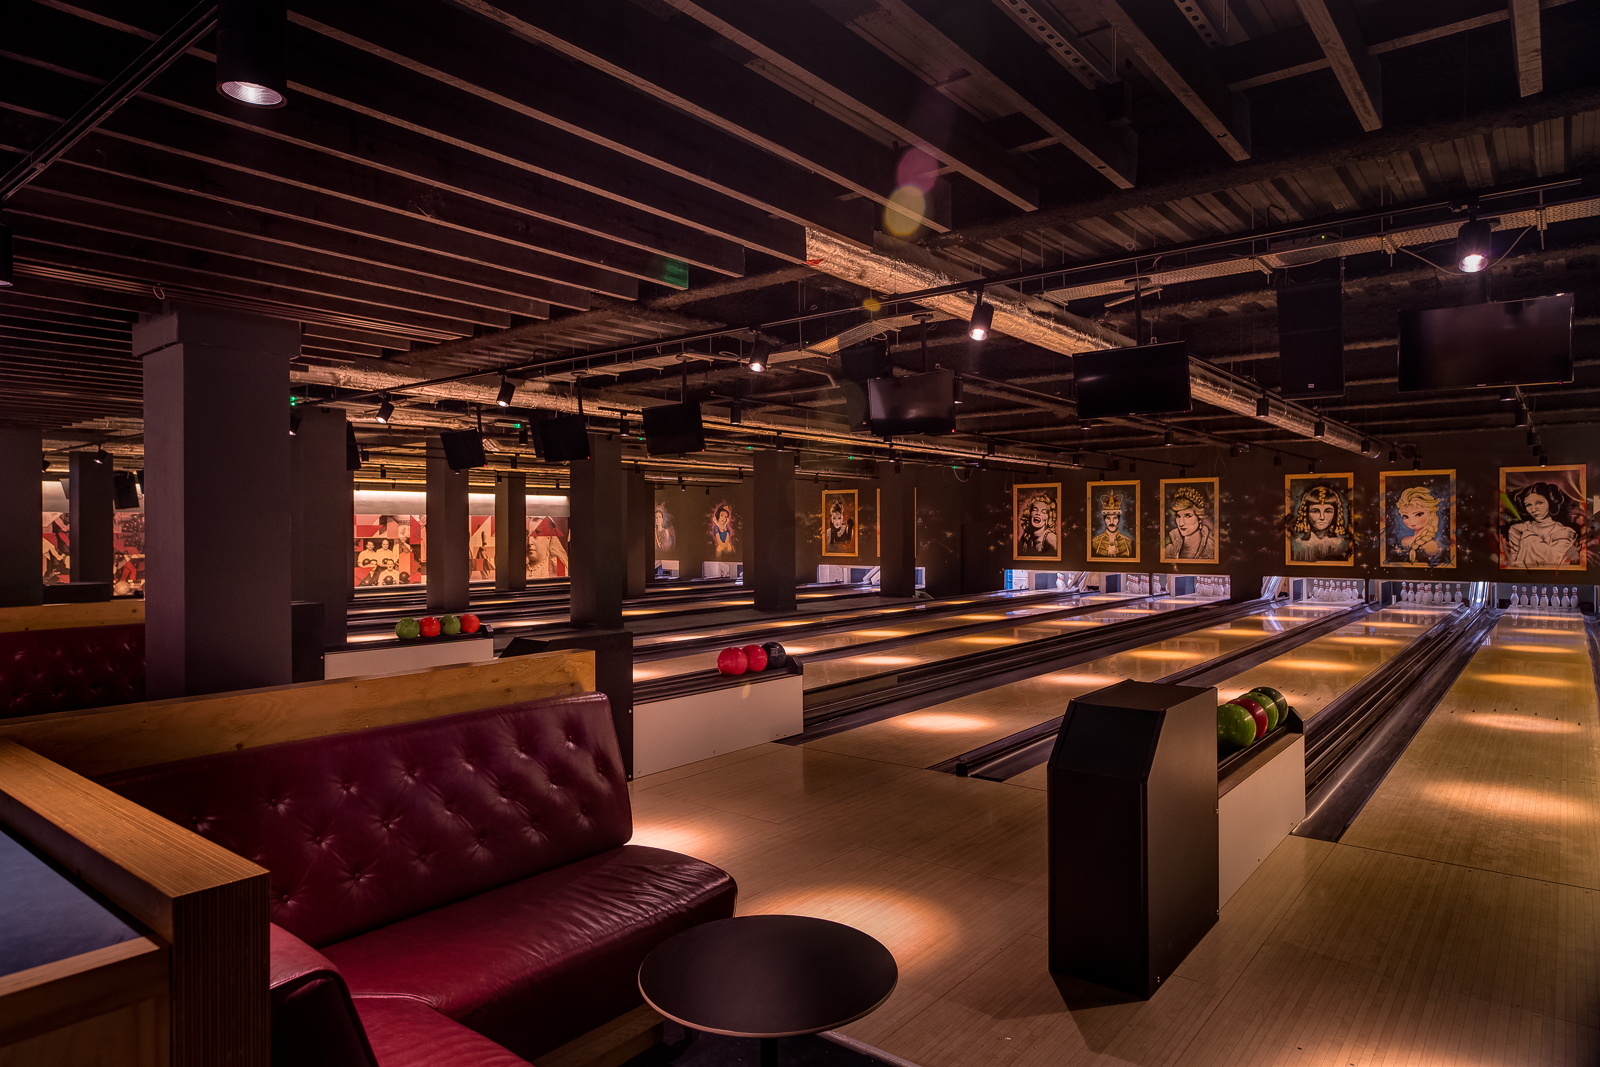 In pictures: first look at Queens: Skate, Dine, Bowl